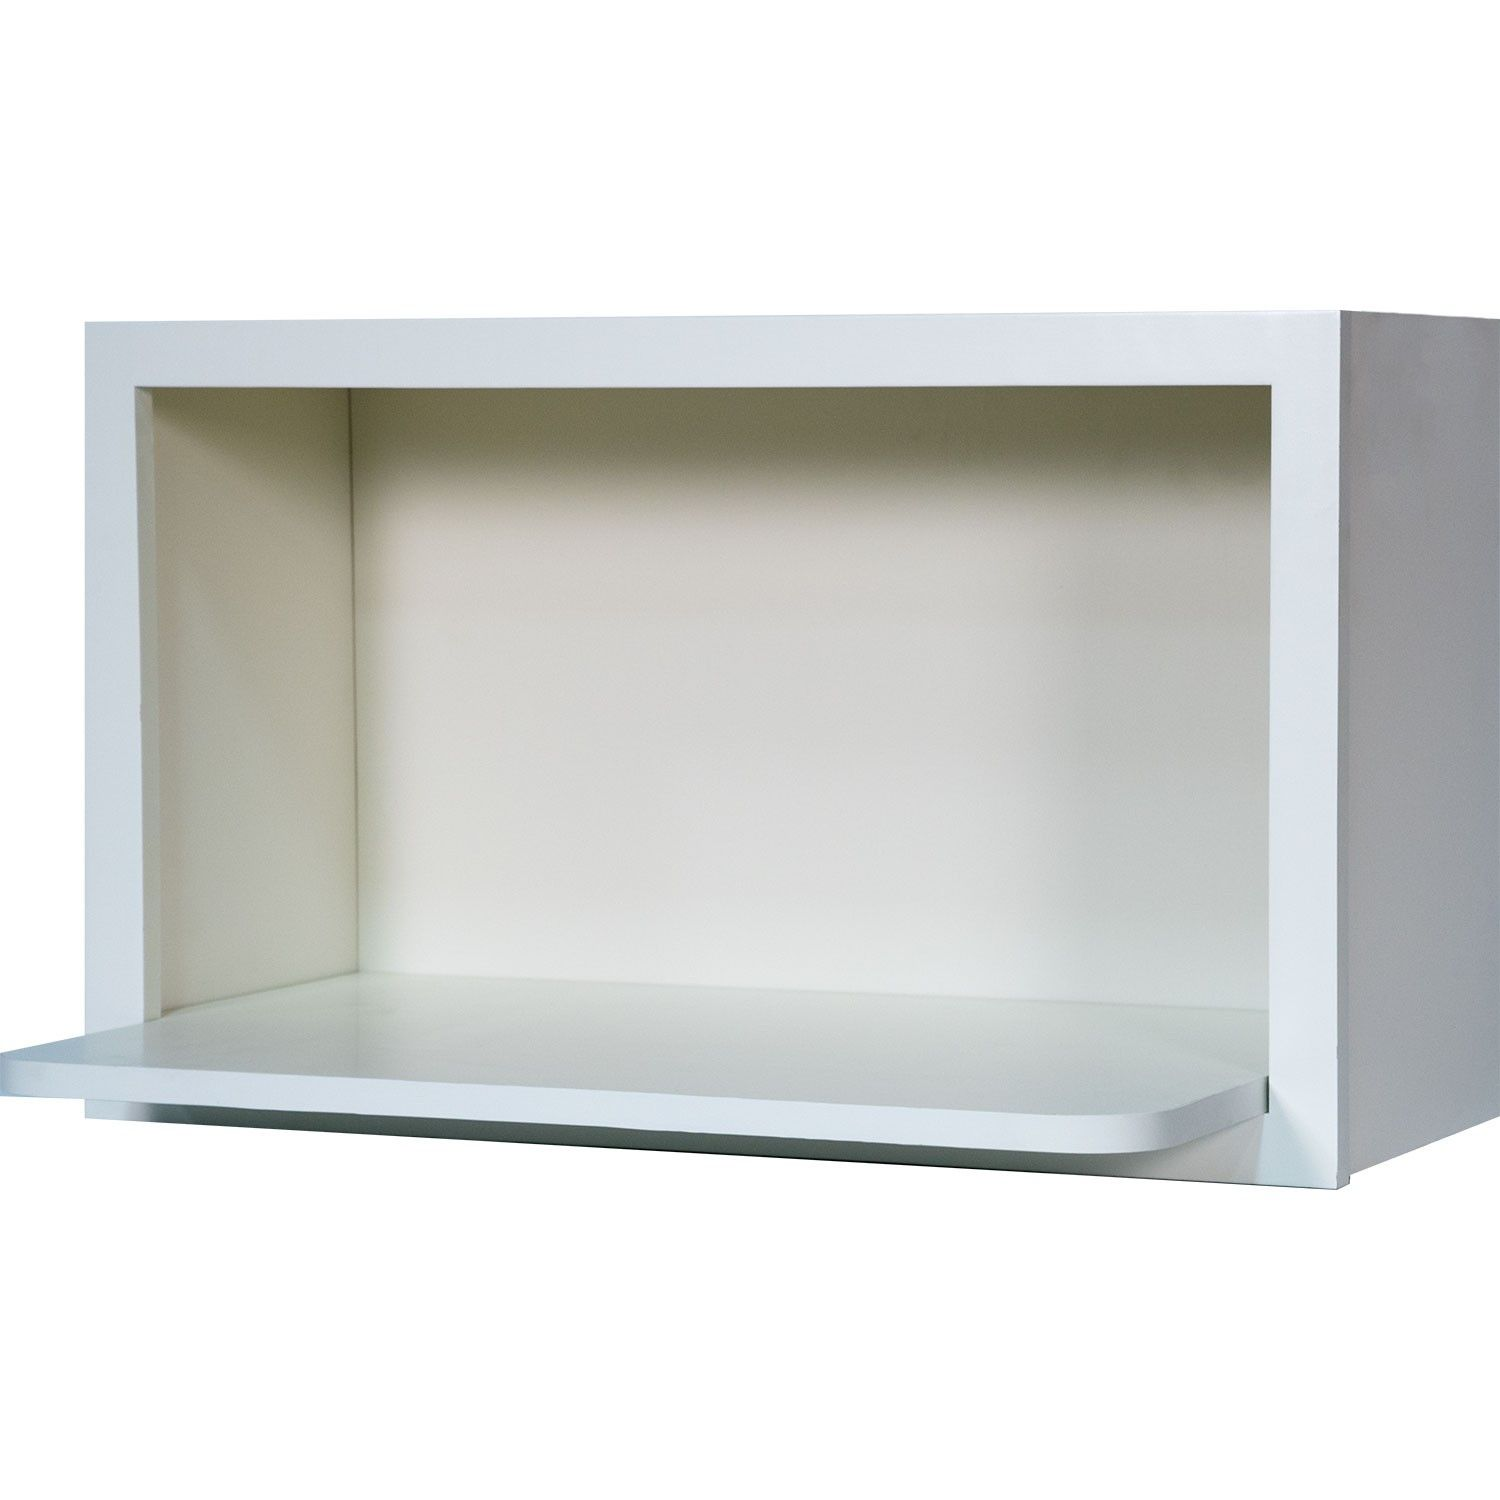 30 Inch Microwave Shelf Wall Cabinet In Shaker White